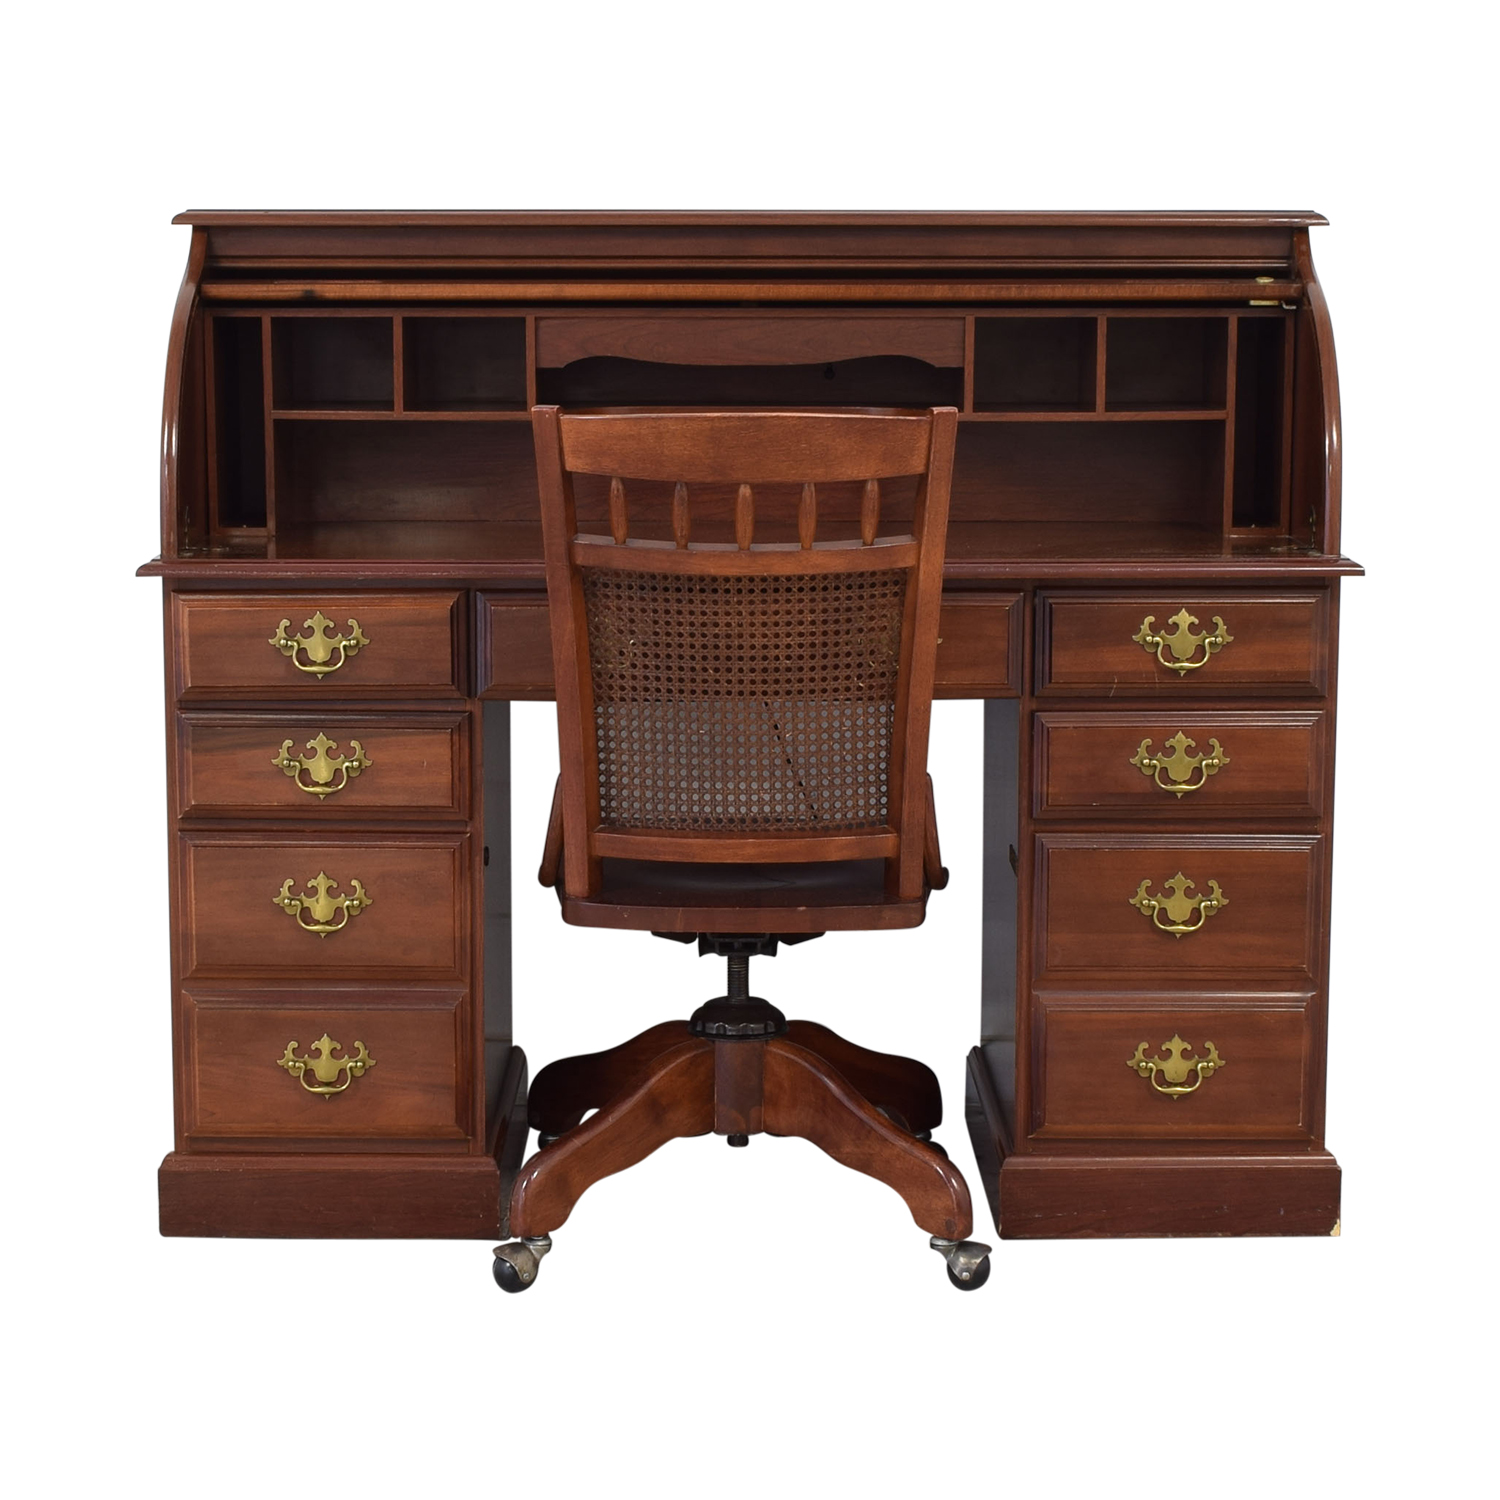 Roll Top Desk with Chair second hand